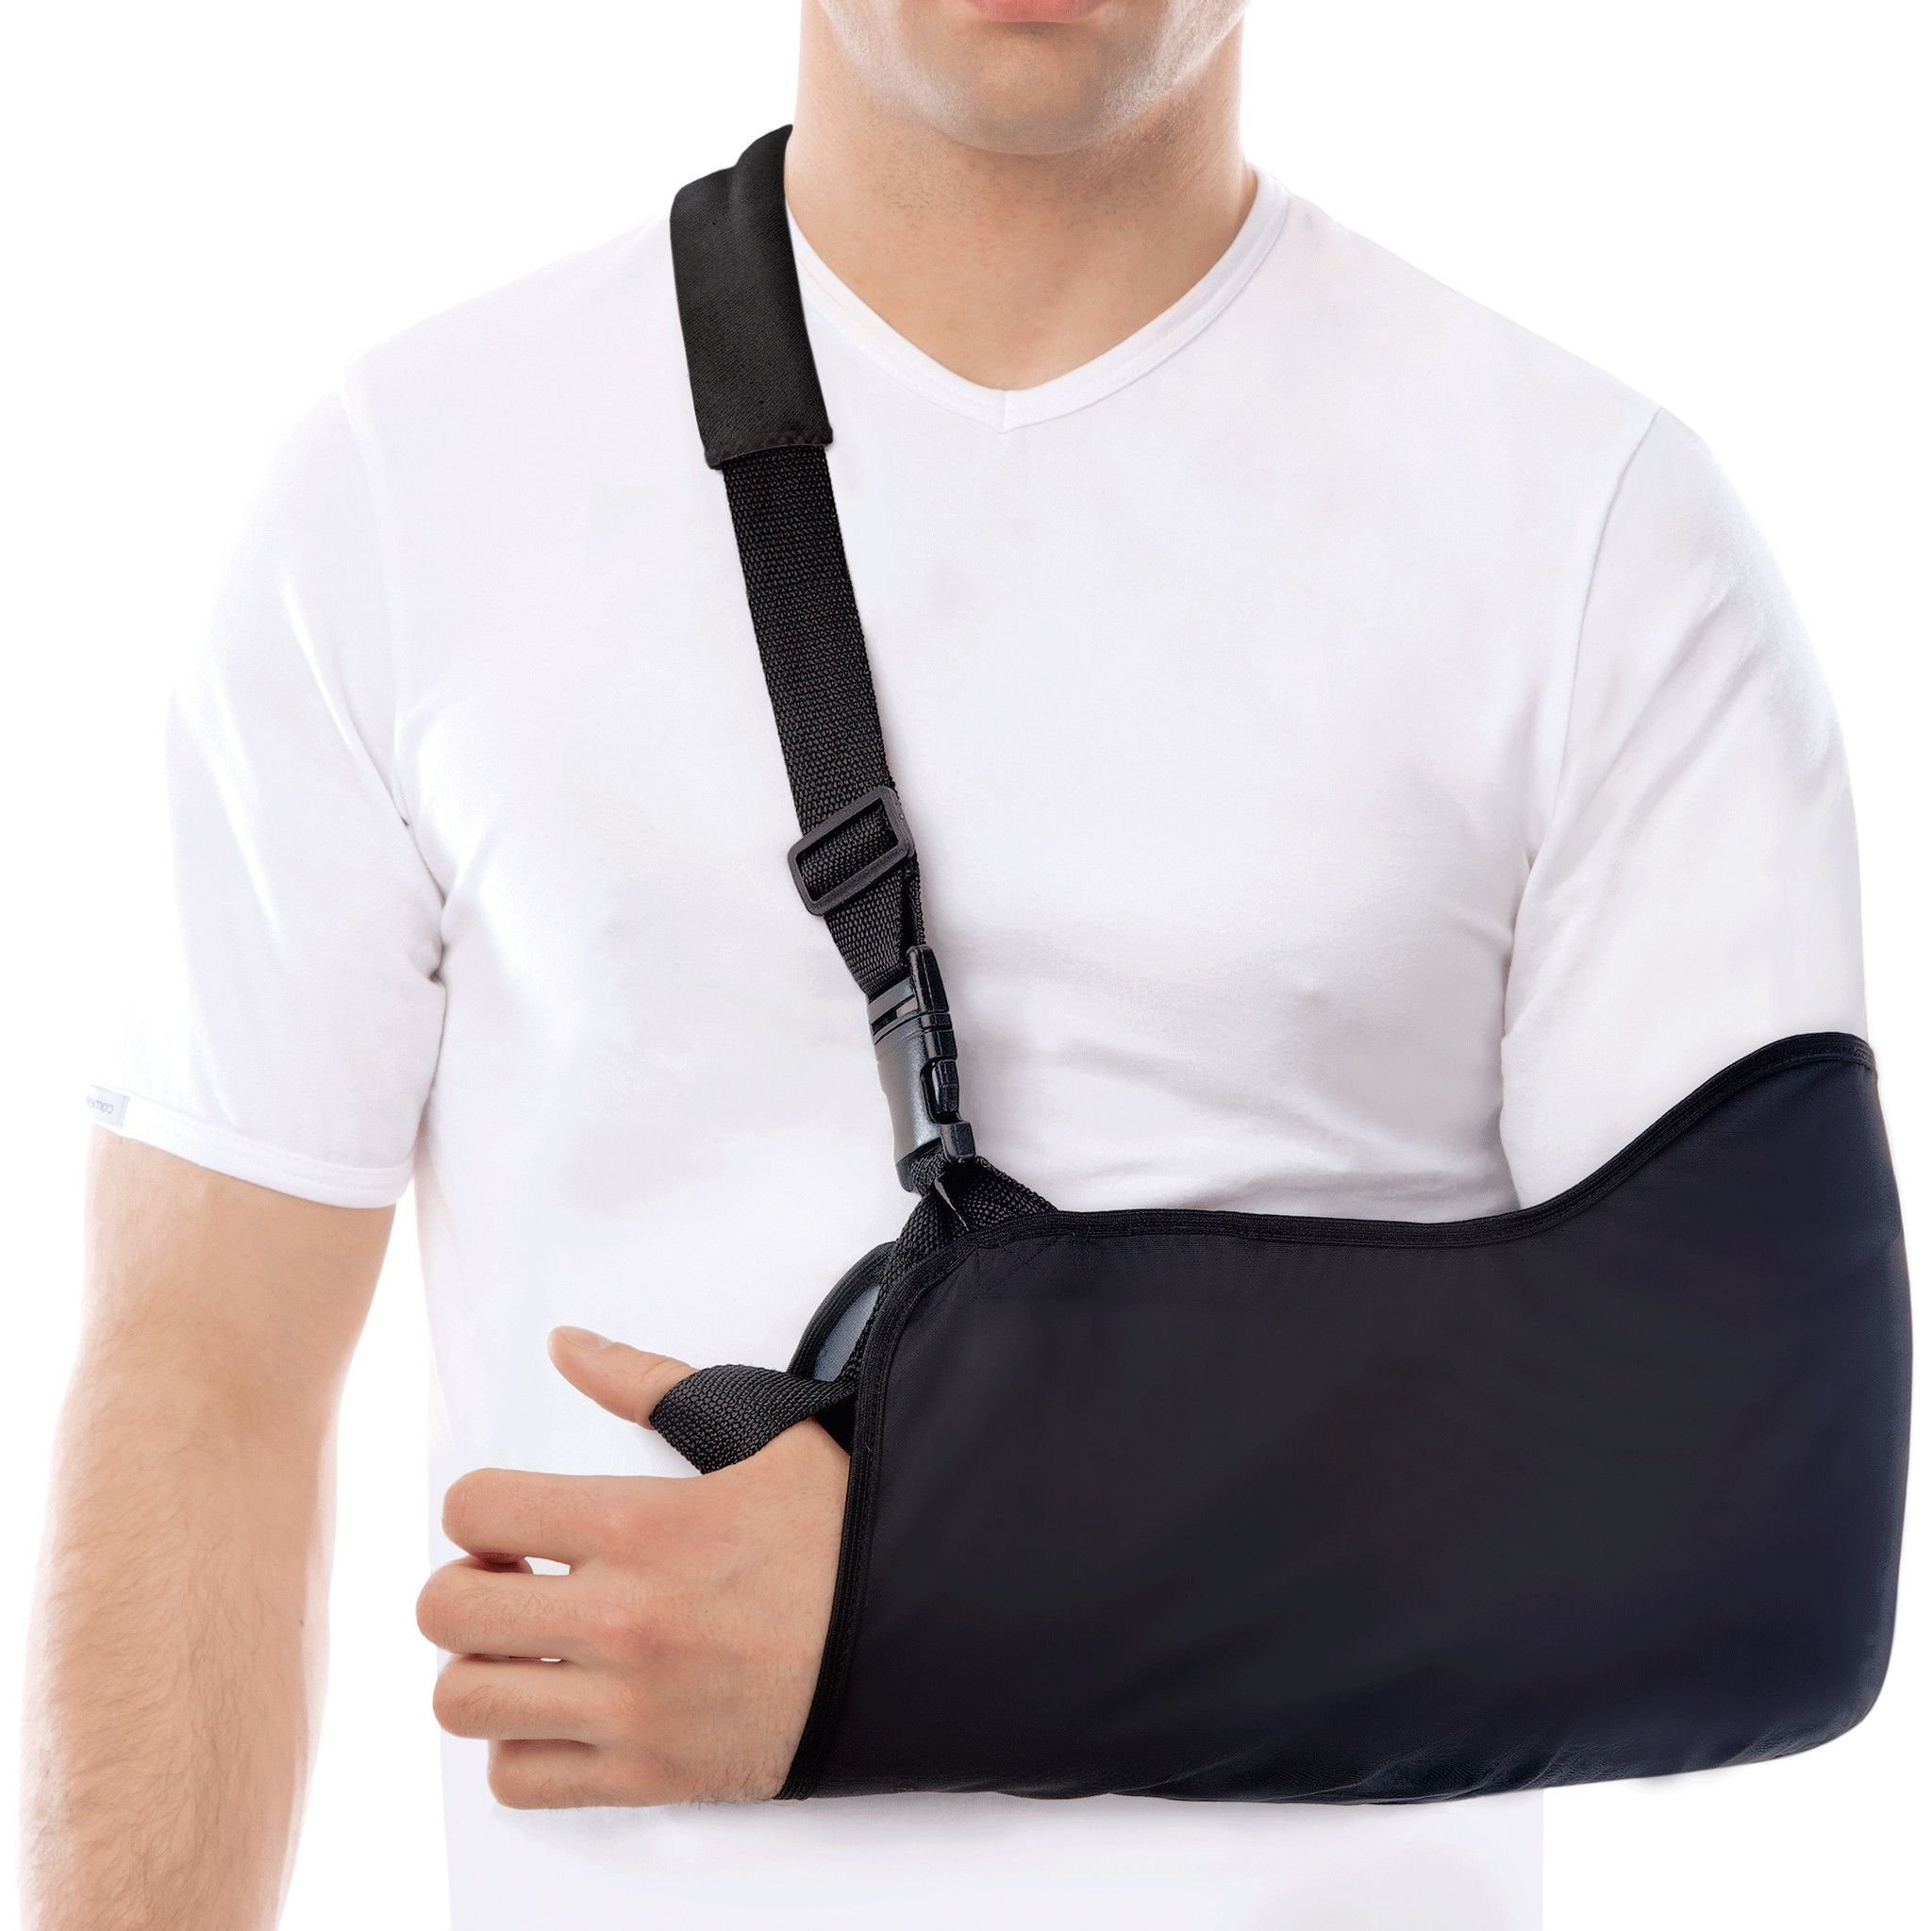 Arm Sling | Products | Pinterest